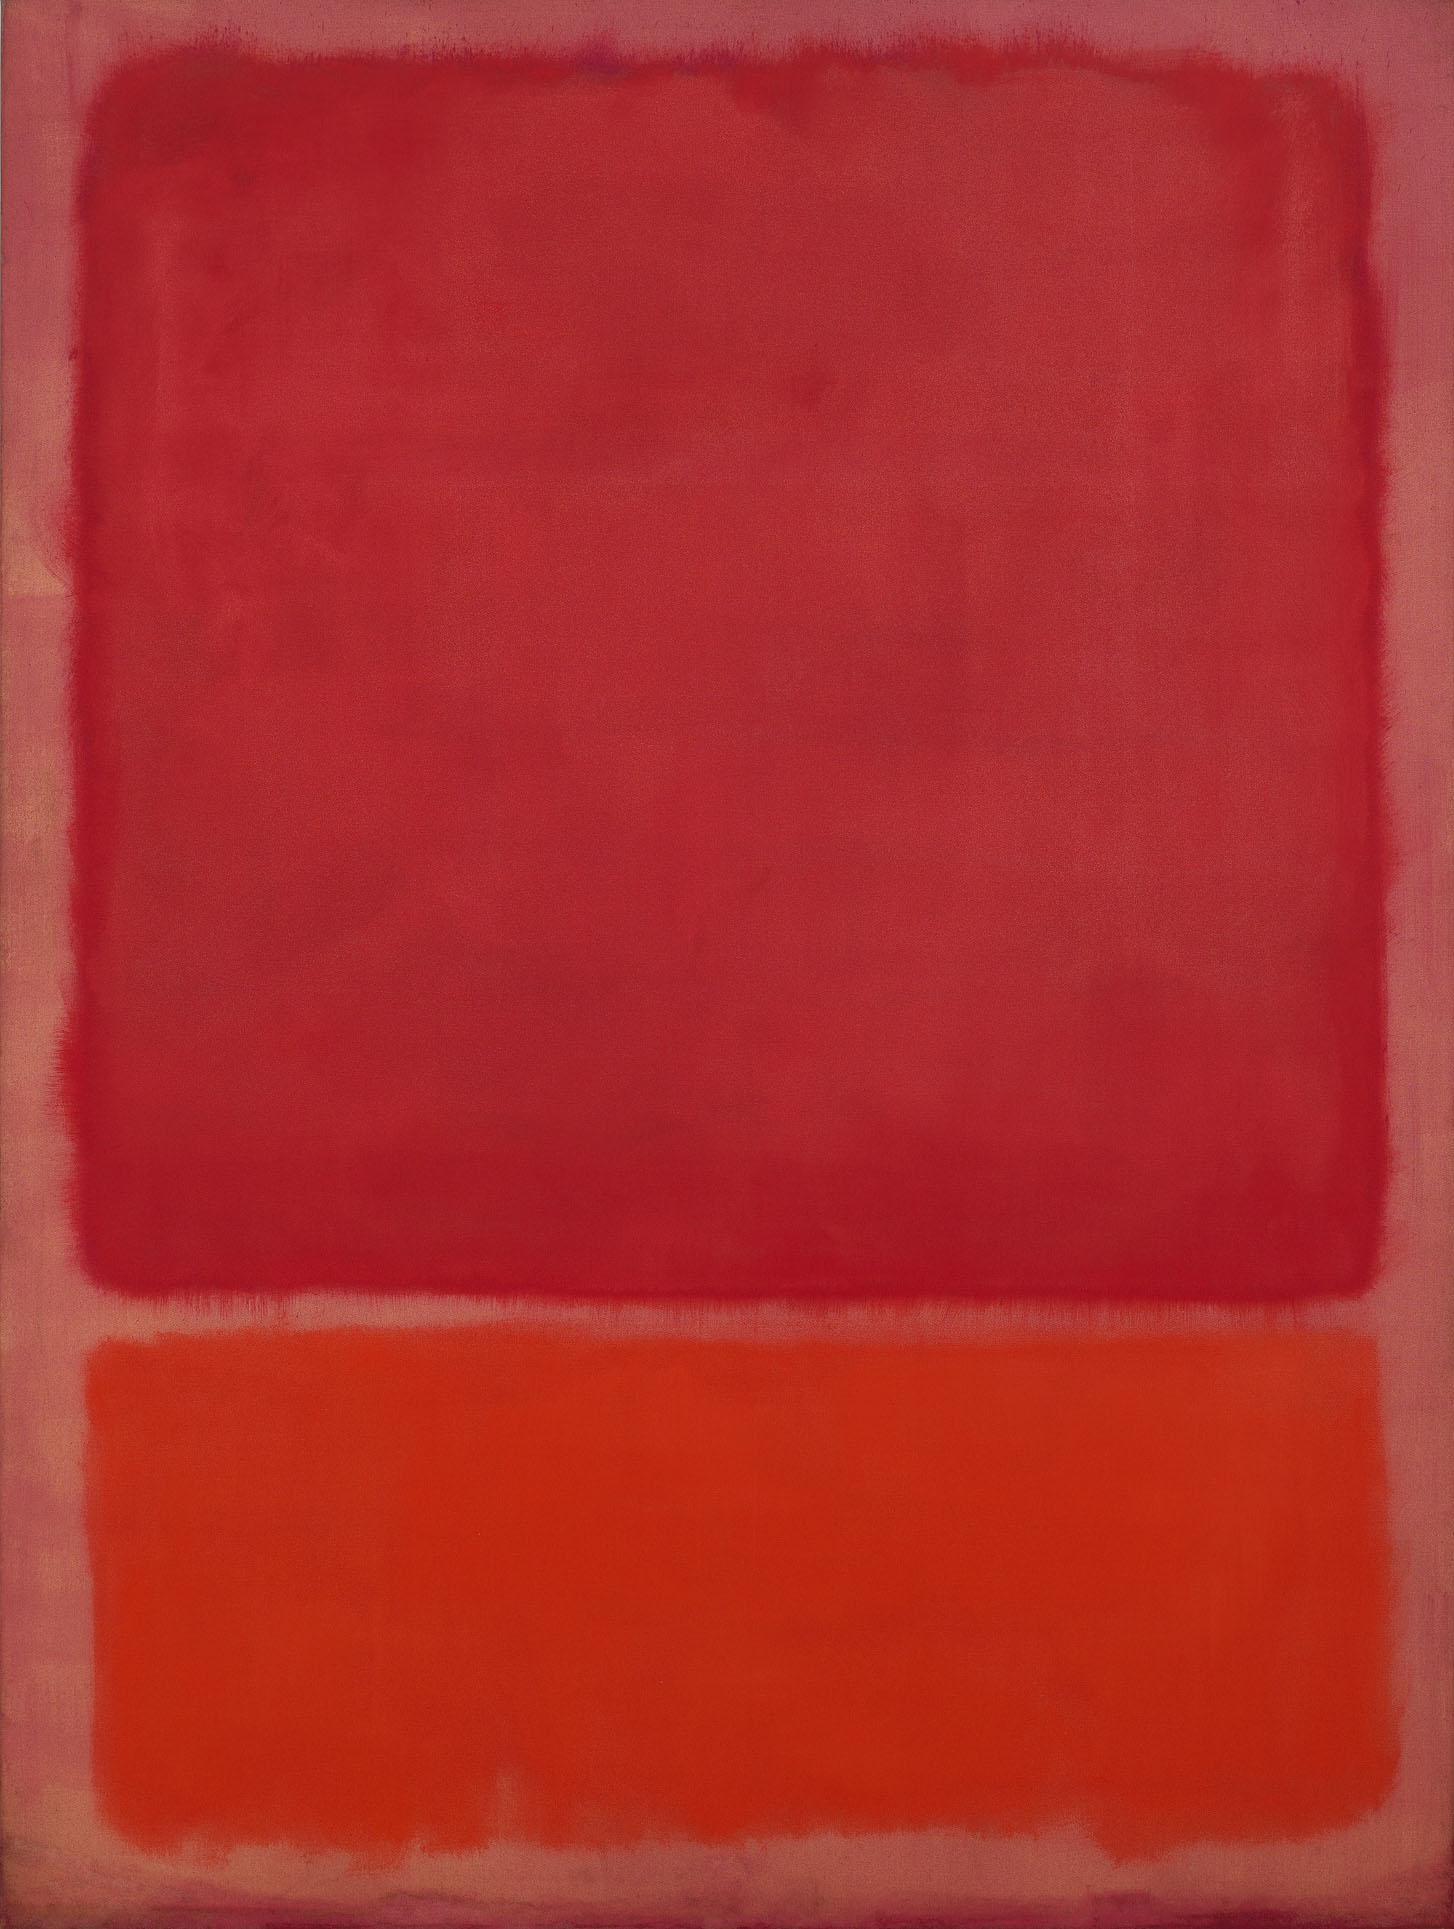 Mark Rothko (1903–1970) Untitled (Red, Orange), 1968, Öl auf Leinwand, 233 x 176 cm © 1998 Kate Rothko Prizel & Christopher Rothko/Bildrecht, Wien, 2019 © Foto: Robert Bayer/Fondation Beyeler, Riehen/Basel, Sammlung Beyeler